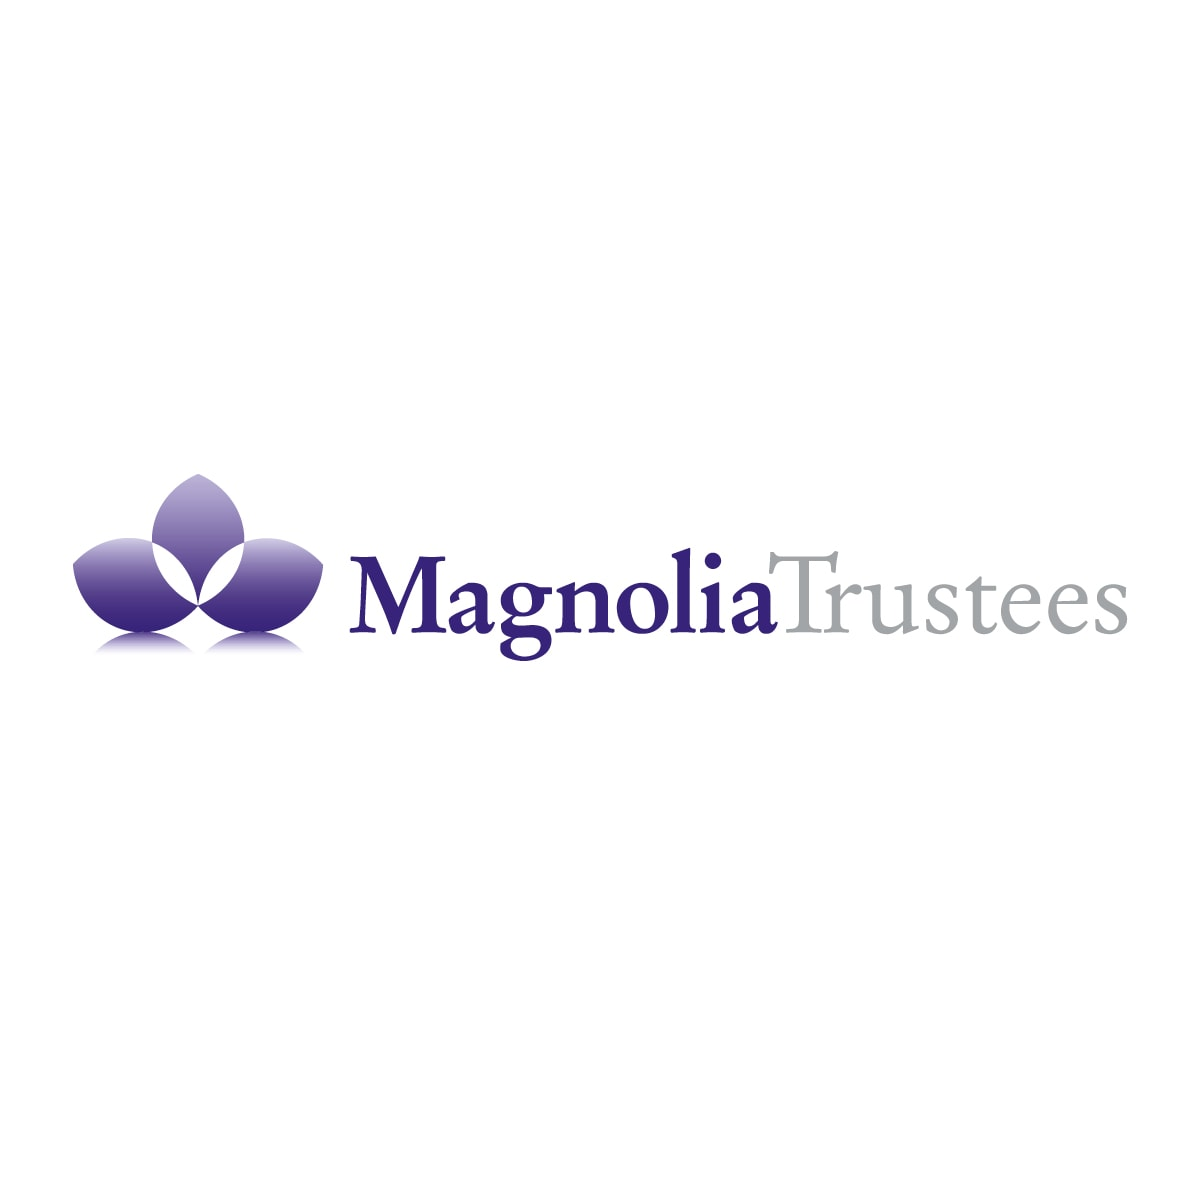 Magnolia Trustees